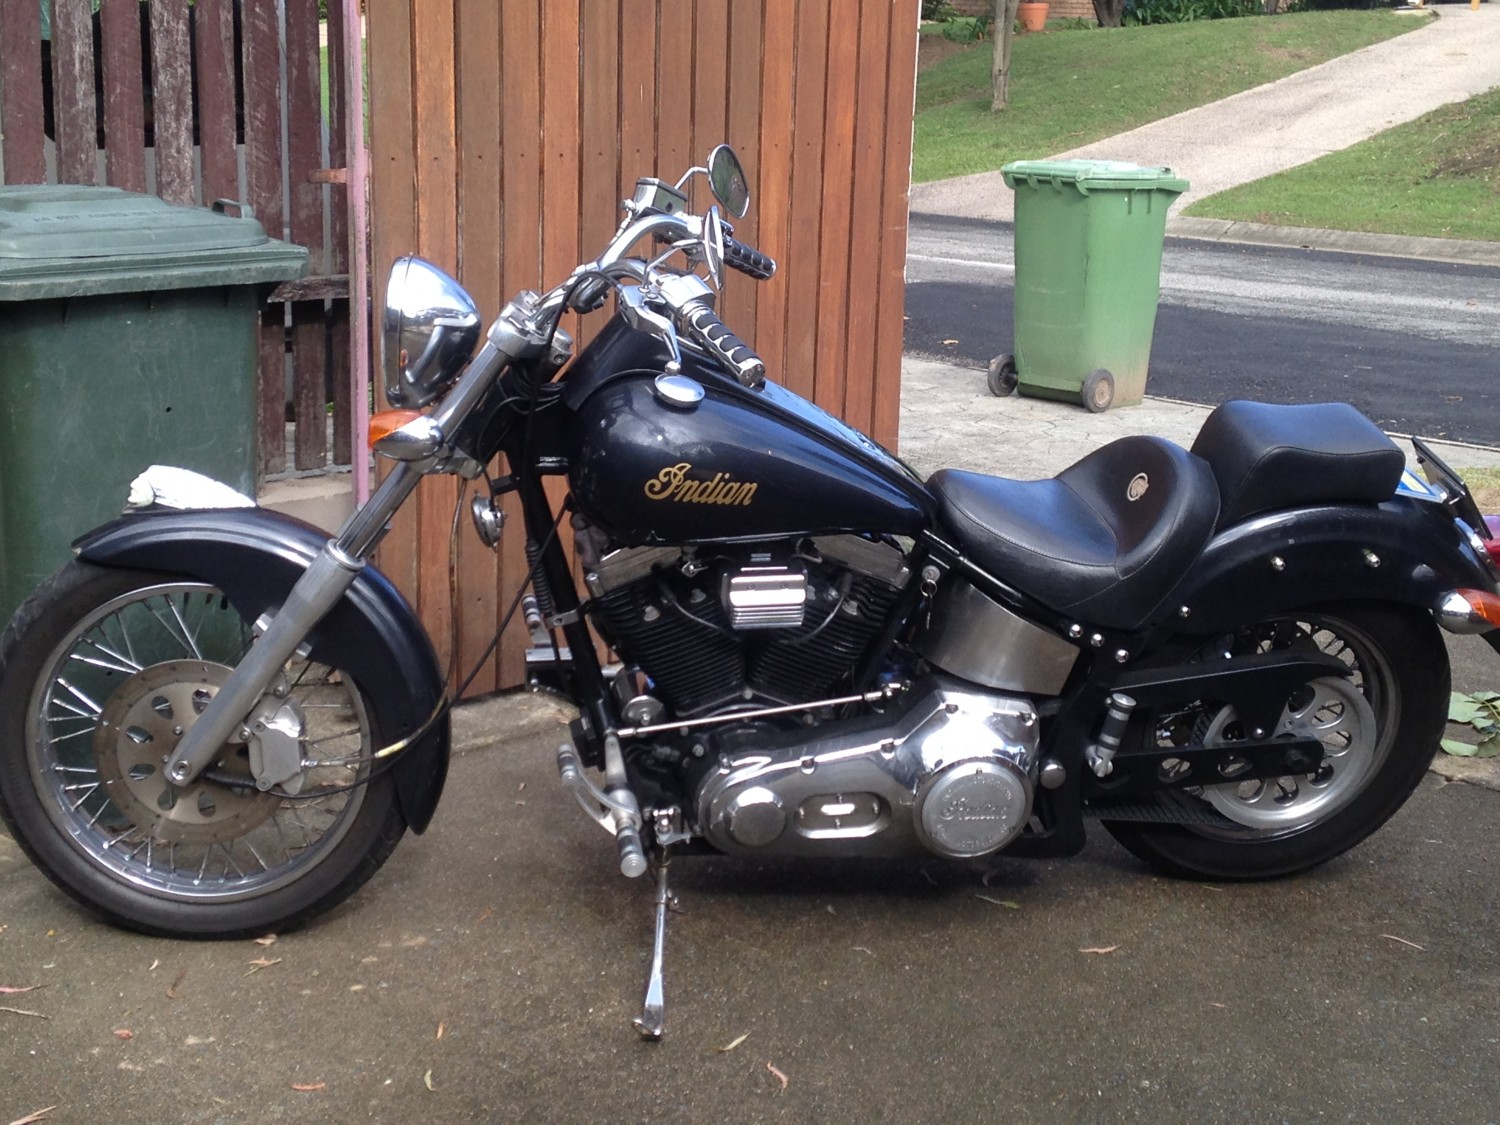 2001 Indian Scout - Scout2001 - Shannons Club-1293